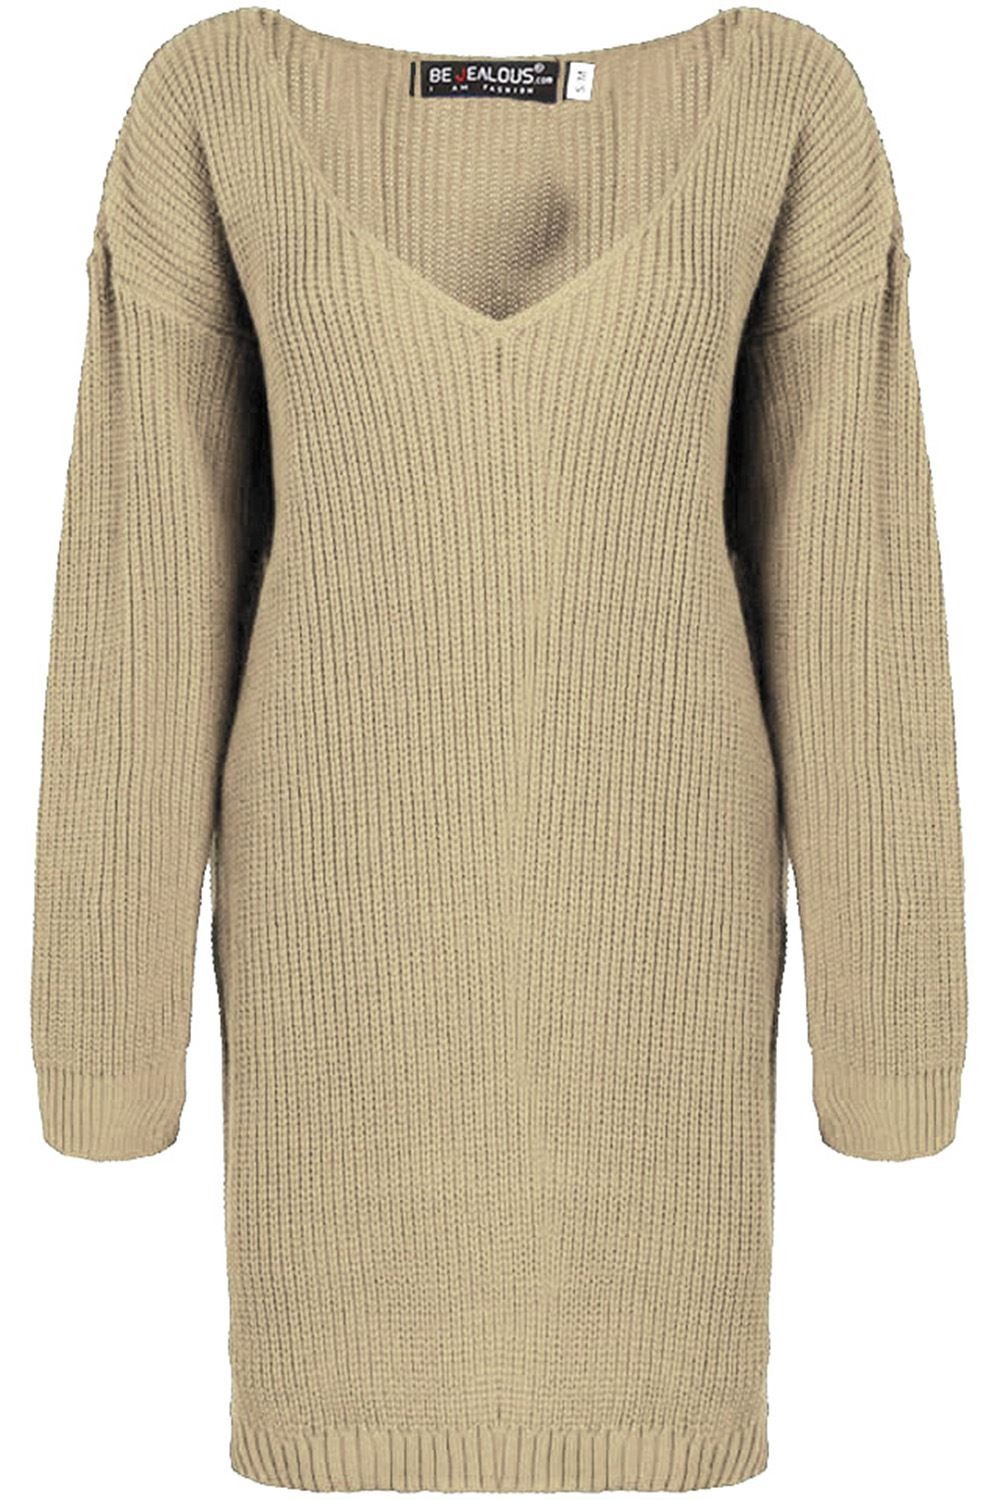 Womens-Oversized-Jumper-Ladies-Dress-Long-Sleeve-Chunky-Knitted-Long-Sweater-Top thumbnail 50